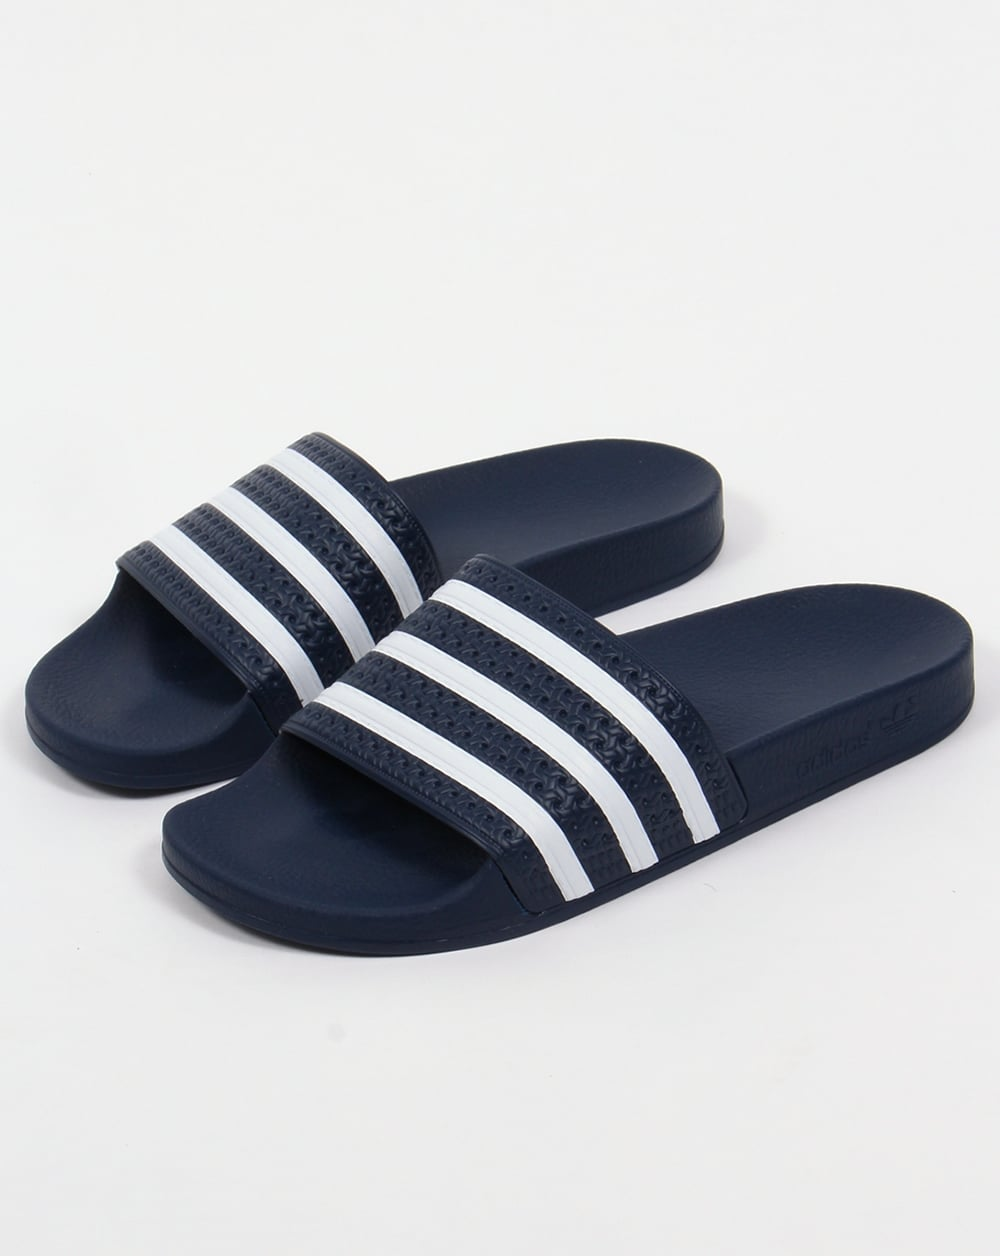 3120c0e0c372 adidas adilette slides. Above  The adidas adilette slides in navy white now  available at 80s Casual Classics.